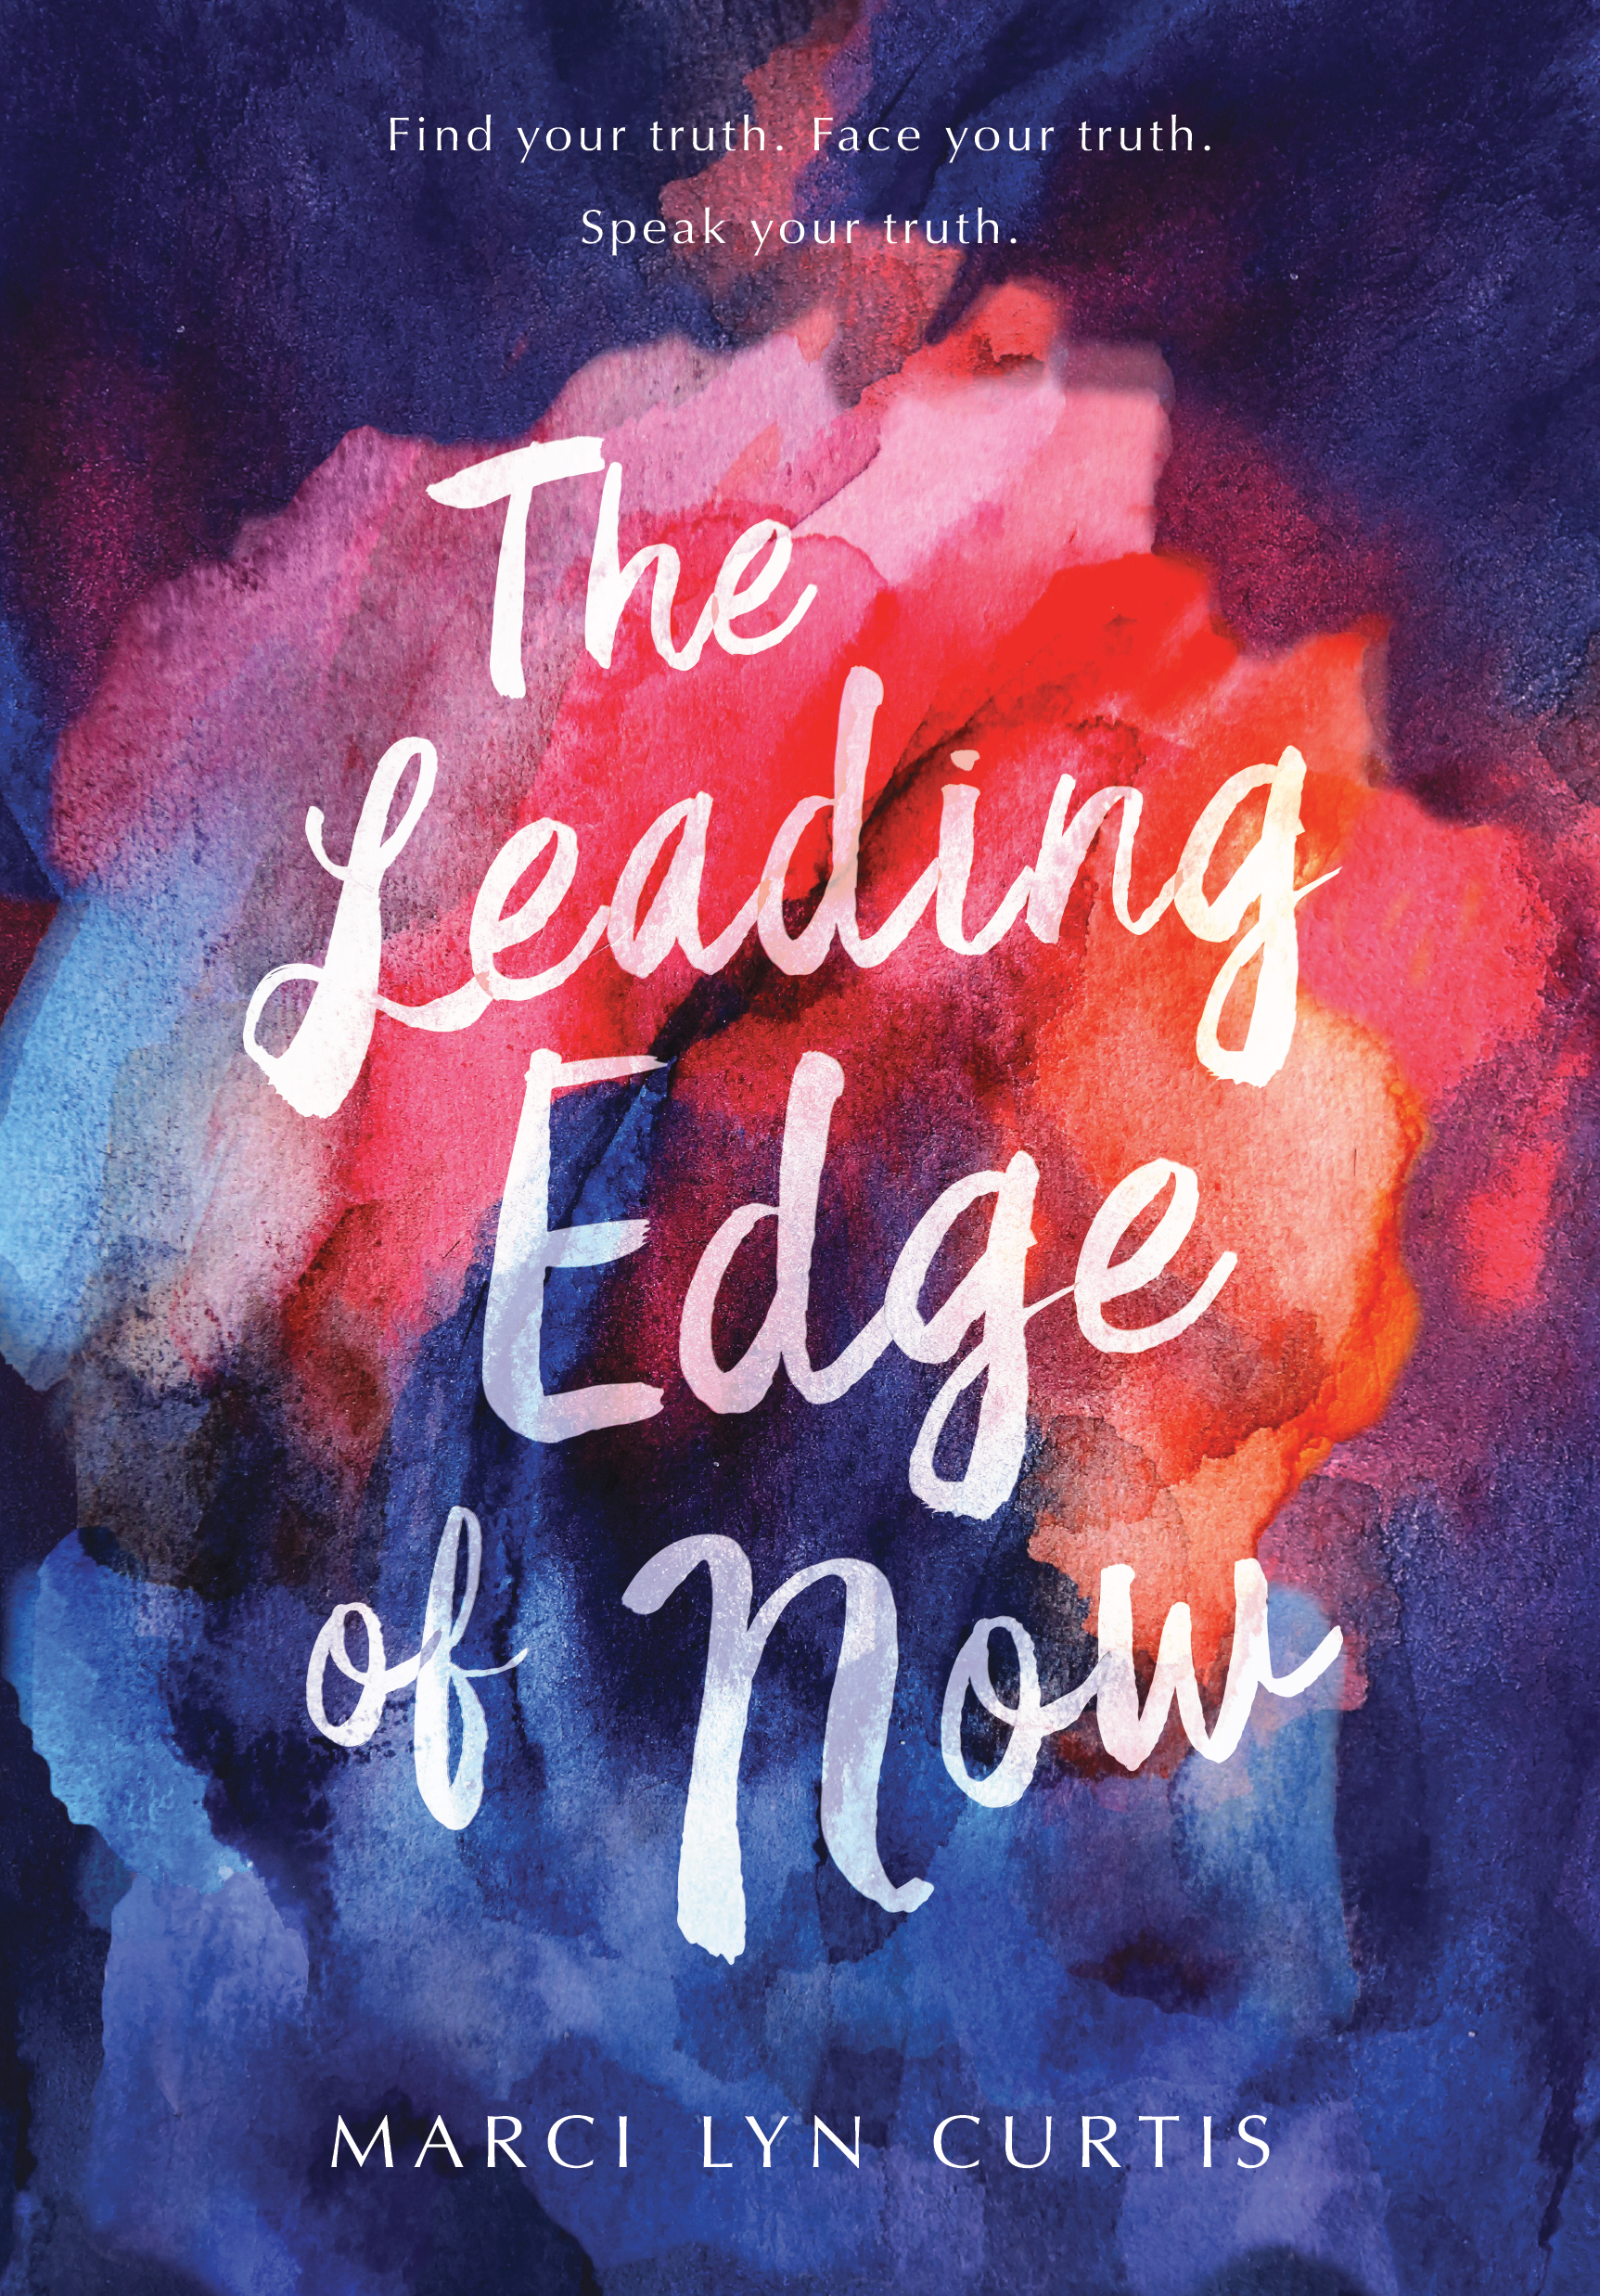 The Leading Edge of Now FINAL COVER HIGH RES.jpg